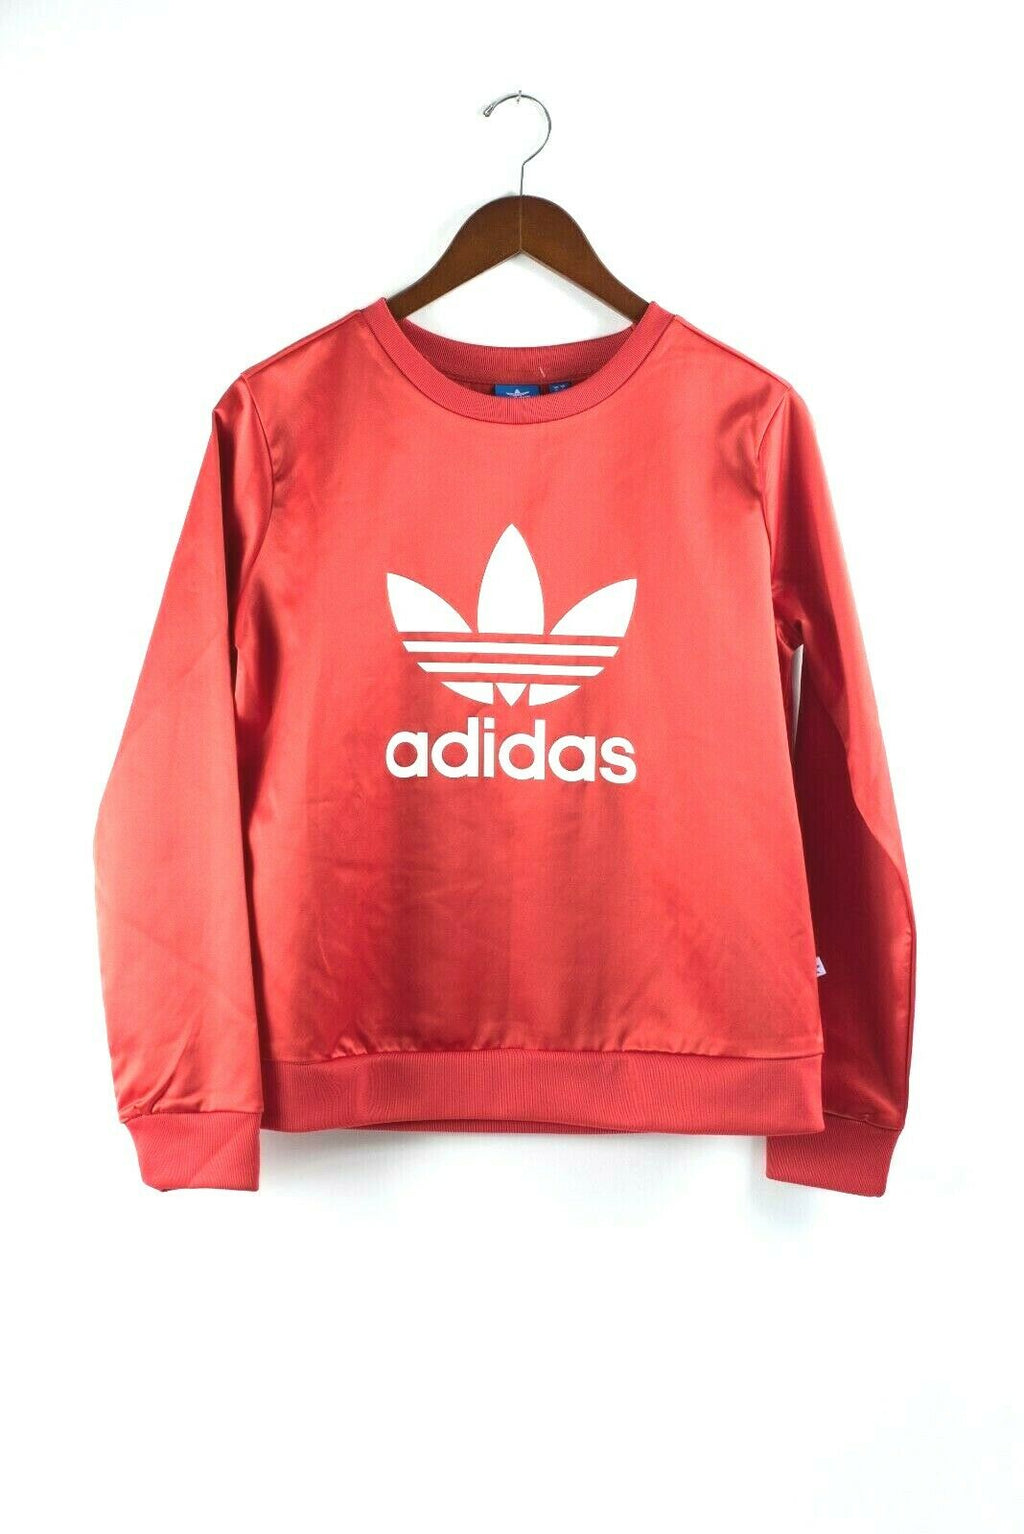 Adidas Original Womens Size Small Red Sweater Crew Sweat Trefoil Logo Sateen NWT